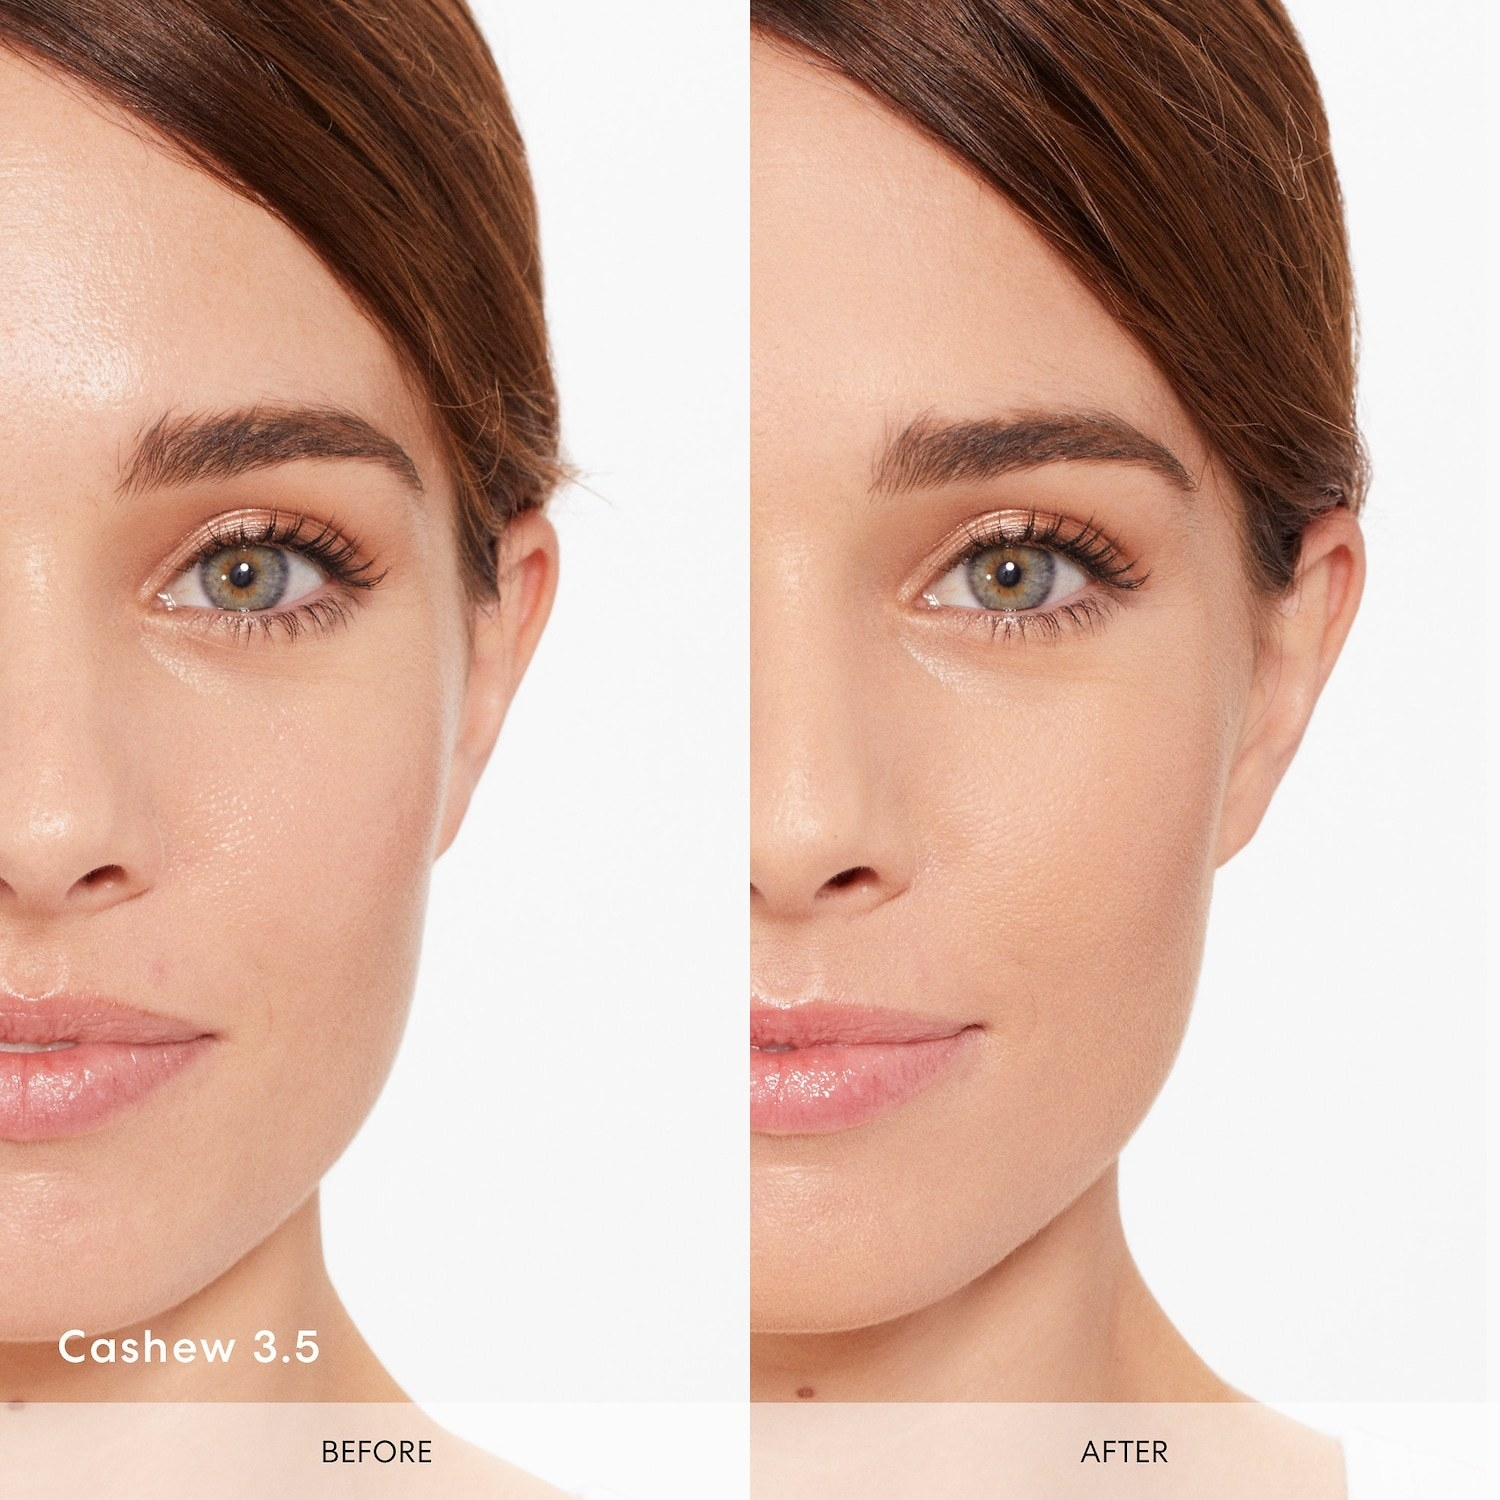 Model with minor blemishes and slight redness / Same model with evened out skin